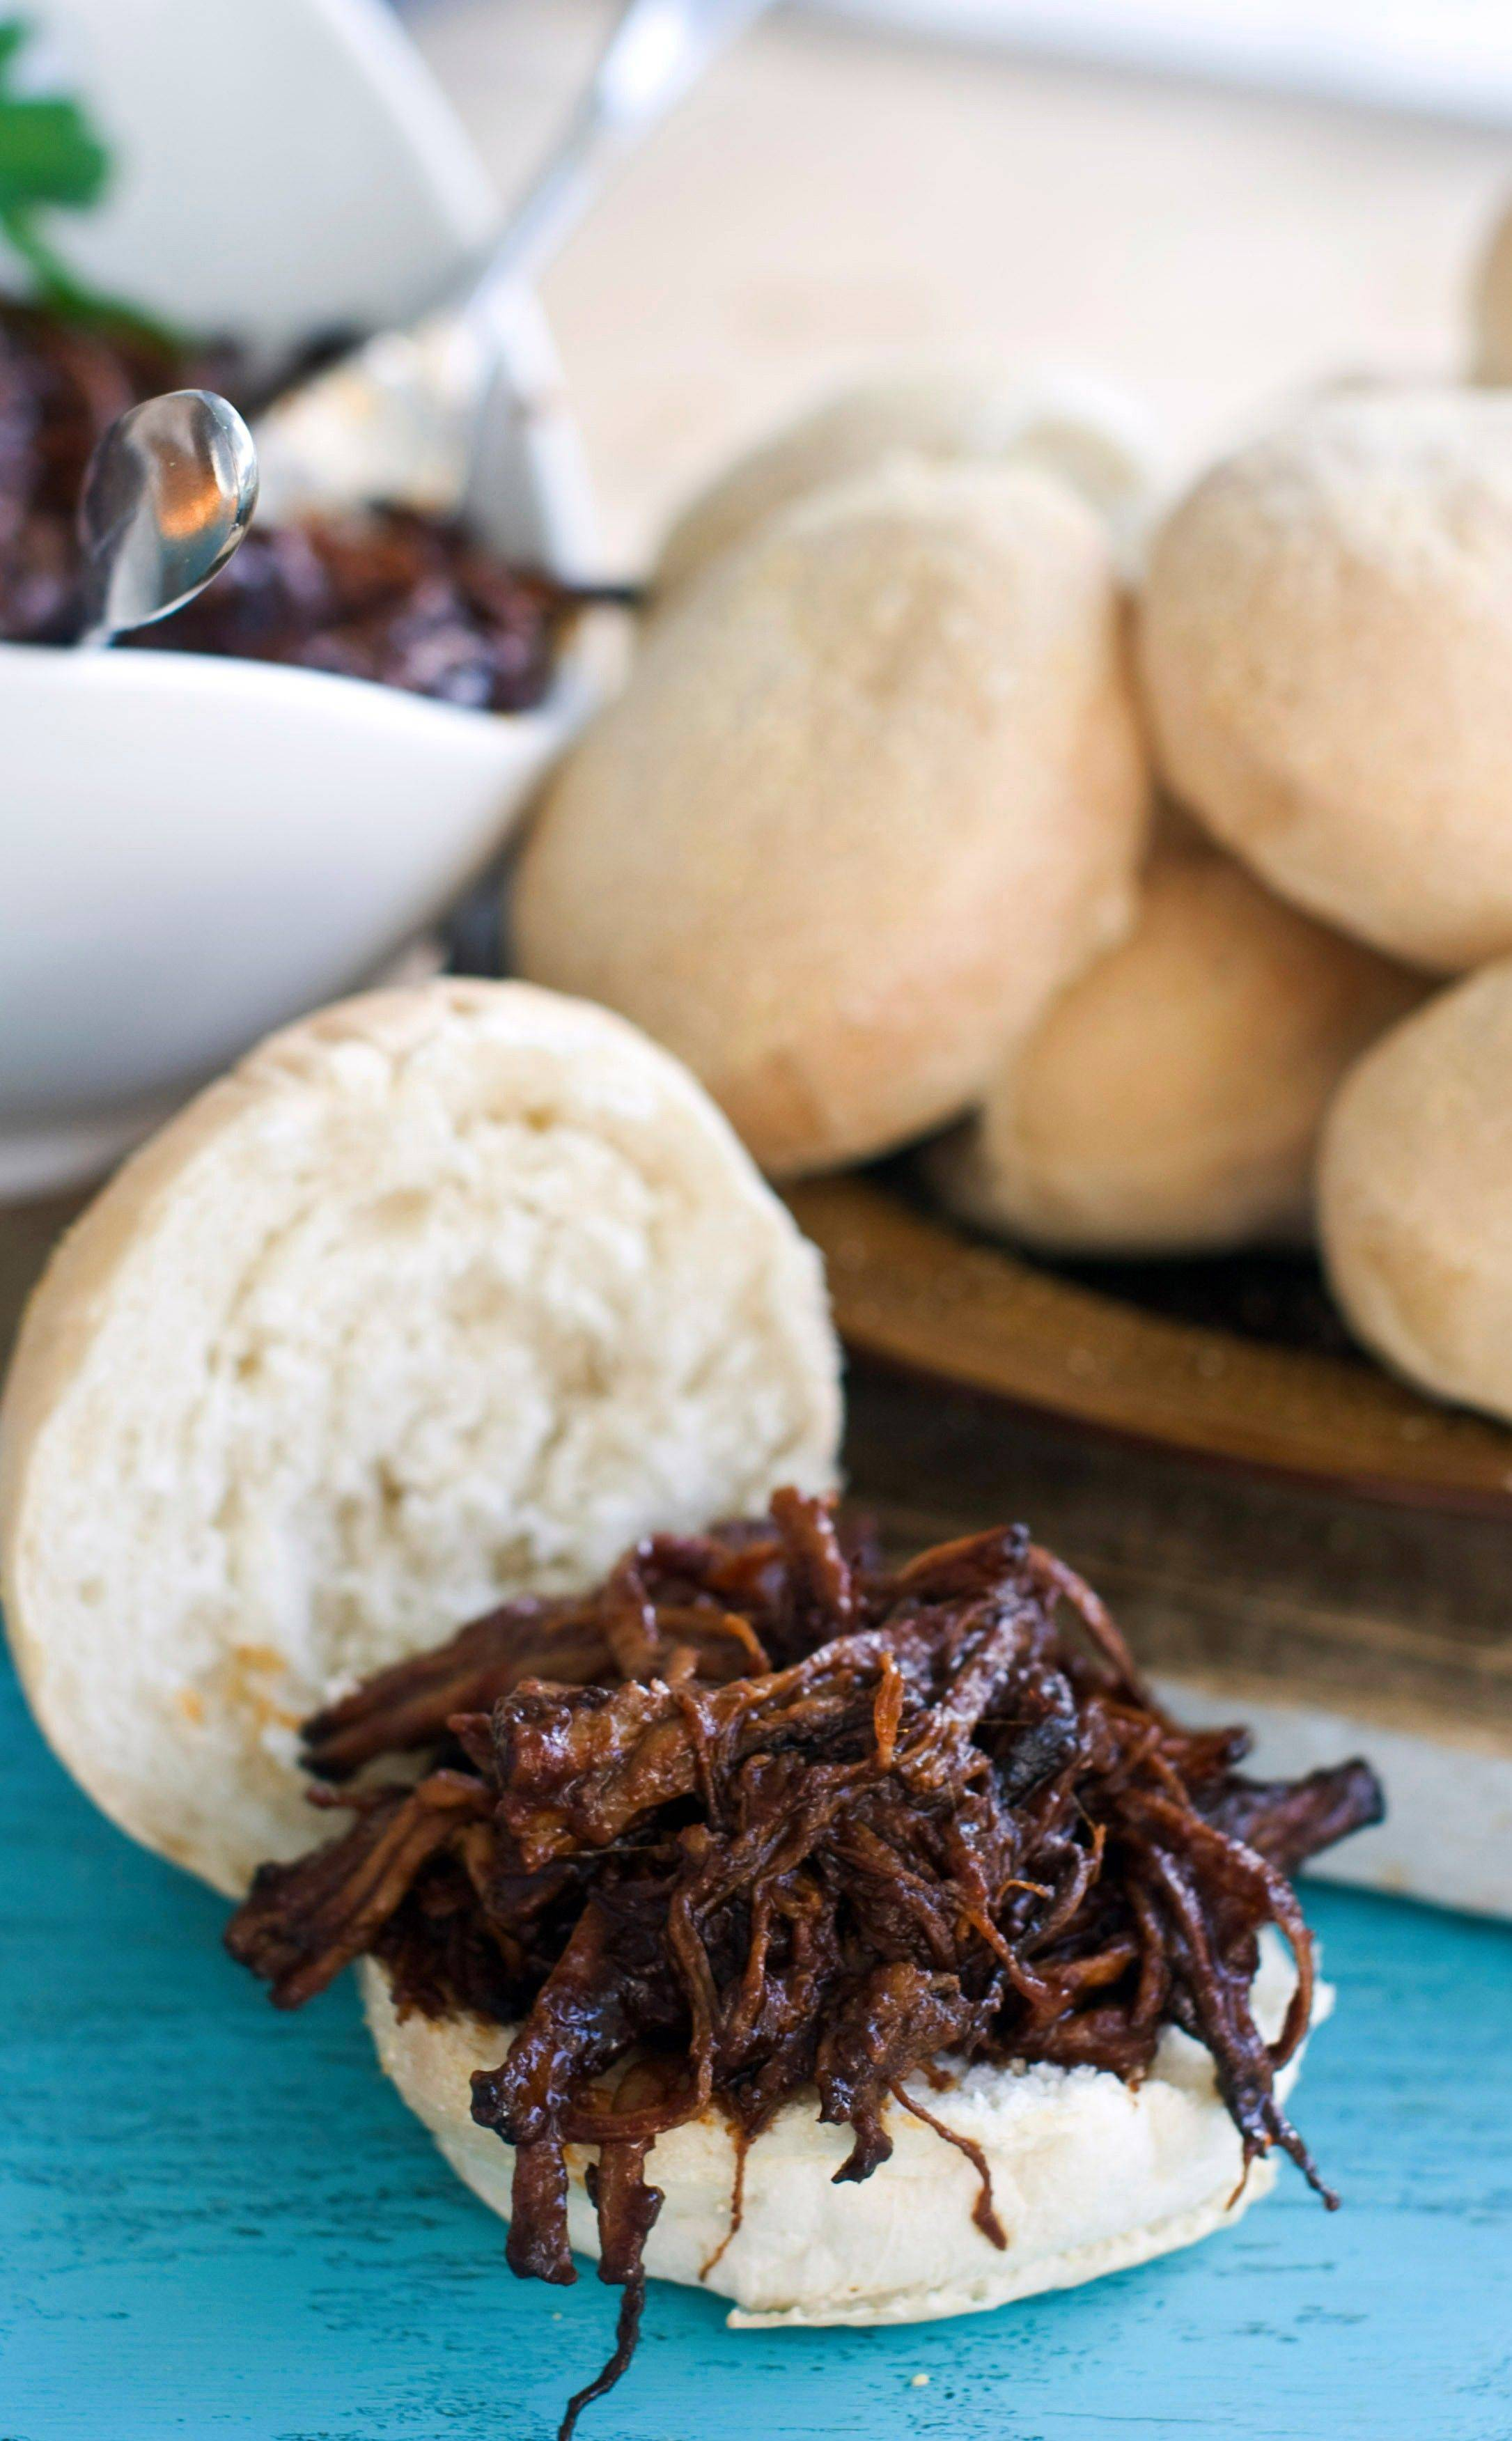 Cooking beef for sweet-and-tangy barbecue brisket sliders in a pressure cooker frees up the oven for other Hanukkah dishes.